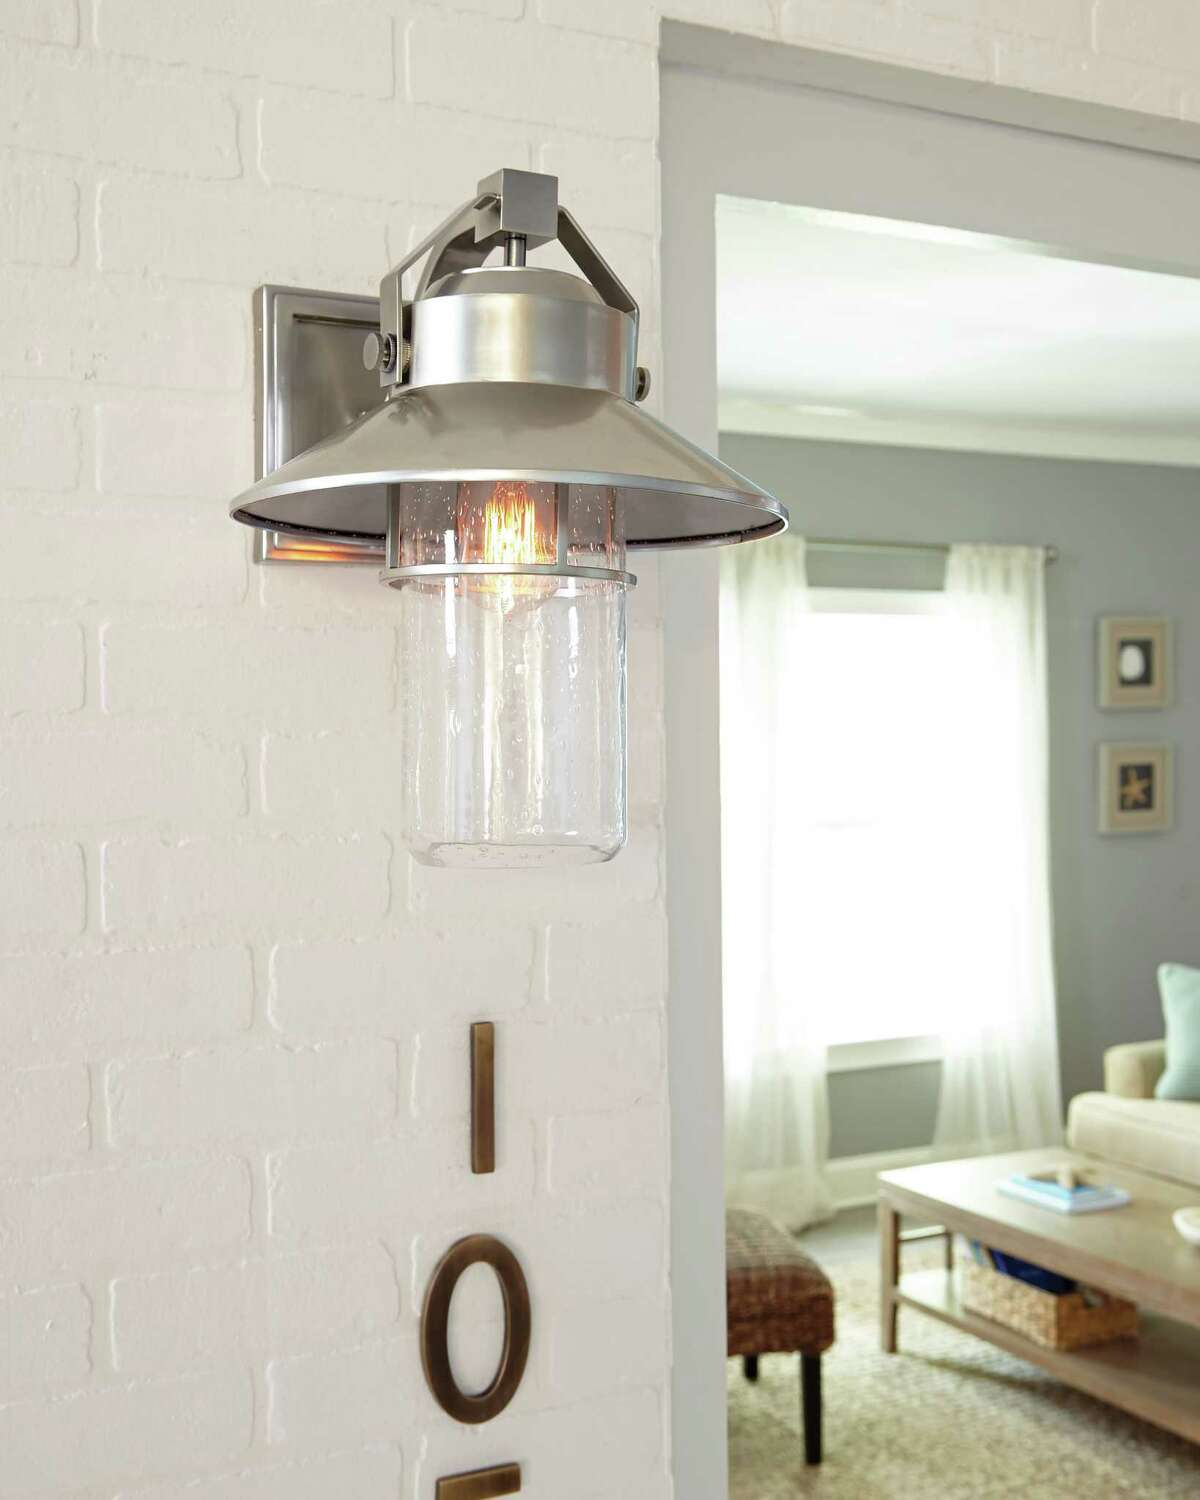 Outdoor wall lantern from the Feiss Collection.